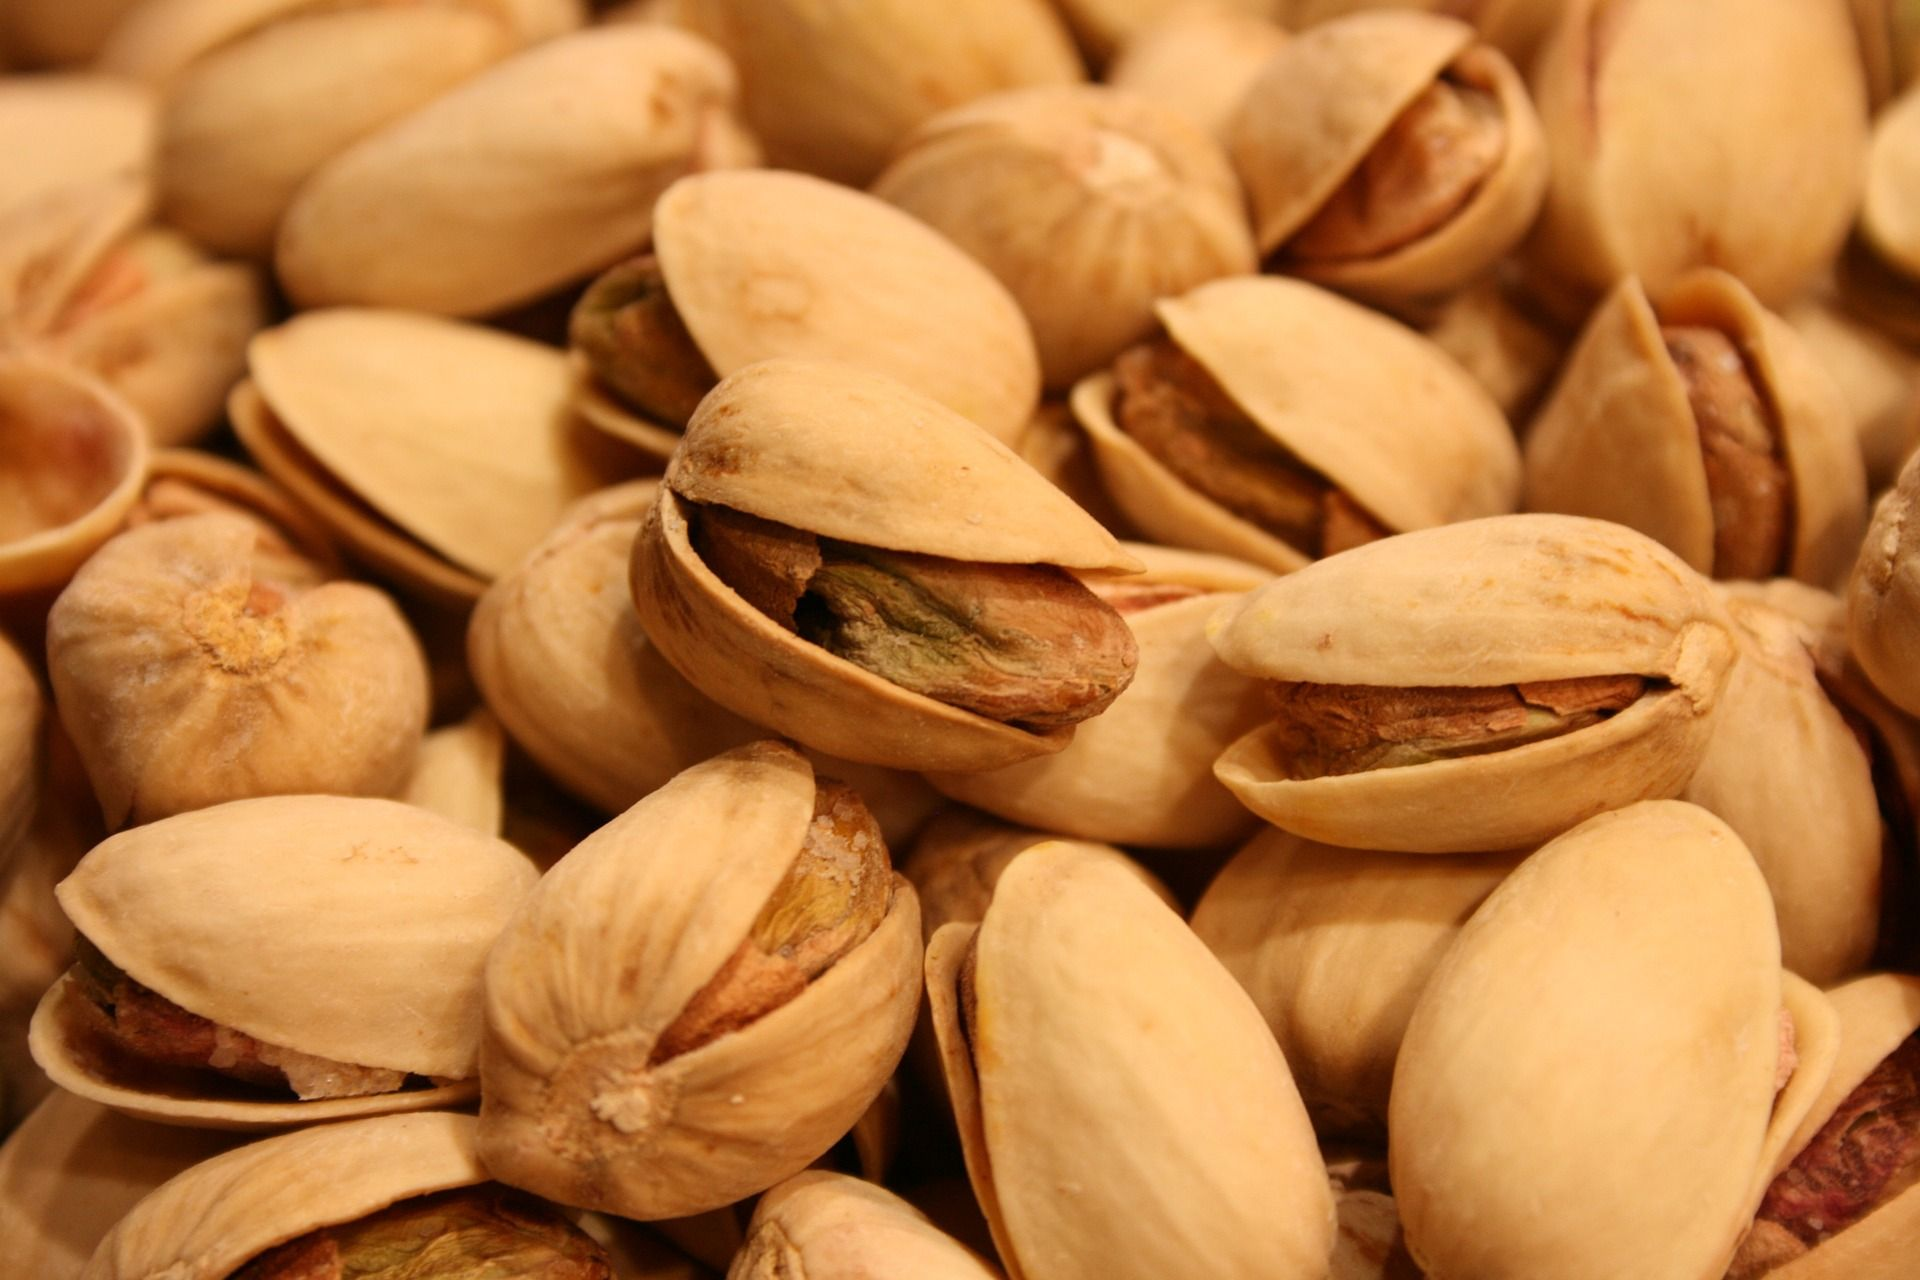 30 Second Mom - : Not So Wonderful: Pistachios Recalled Due to Possible Risks!